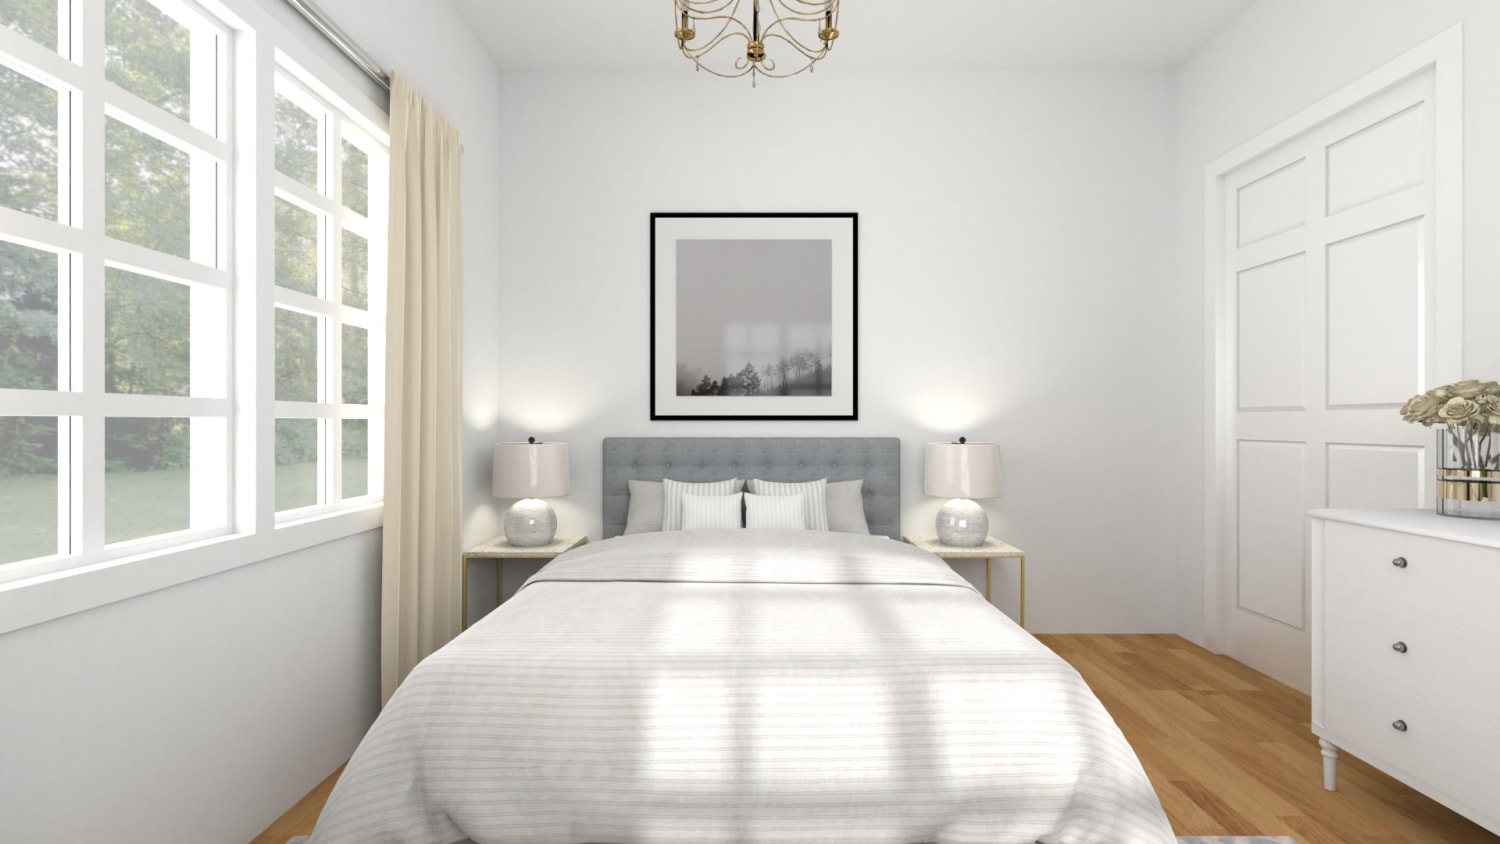 All White: Modern Chic Bedroom Design By Spacejoy